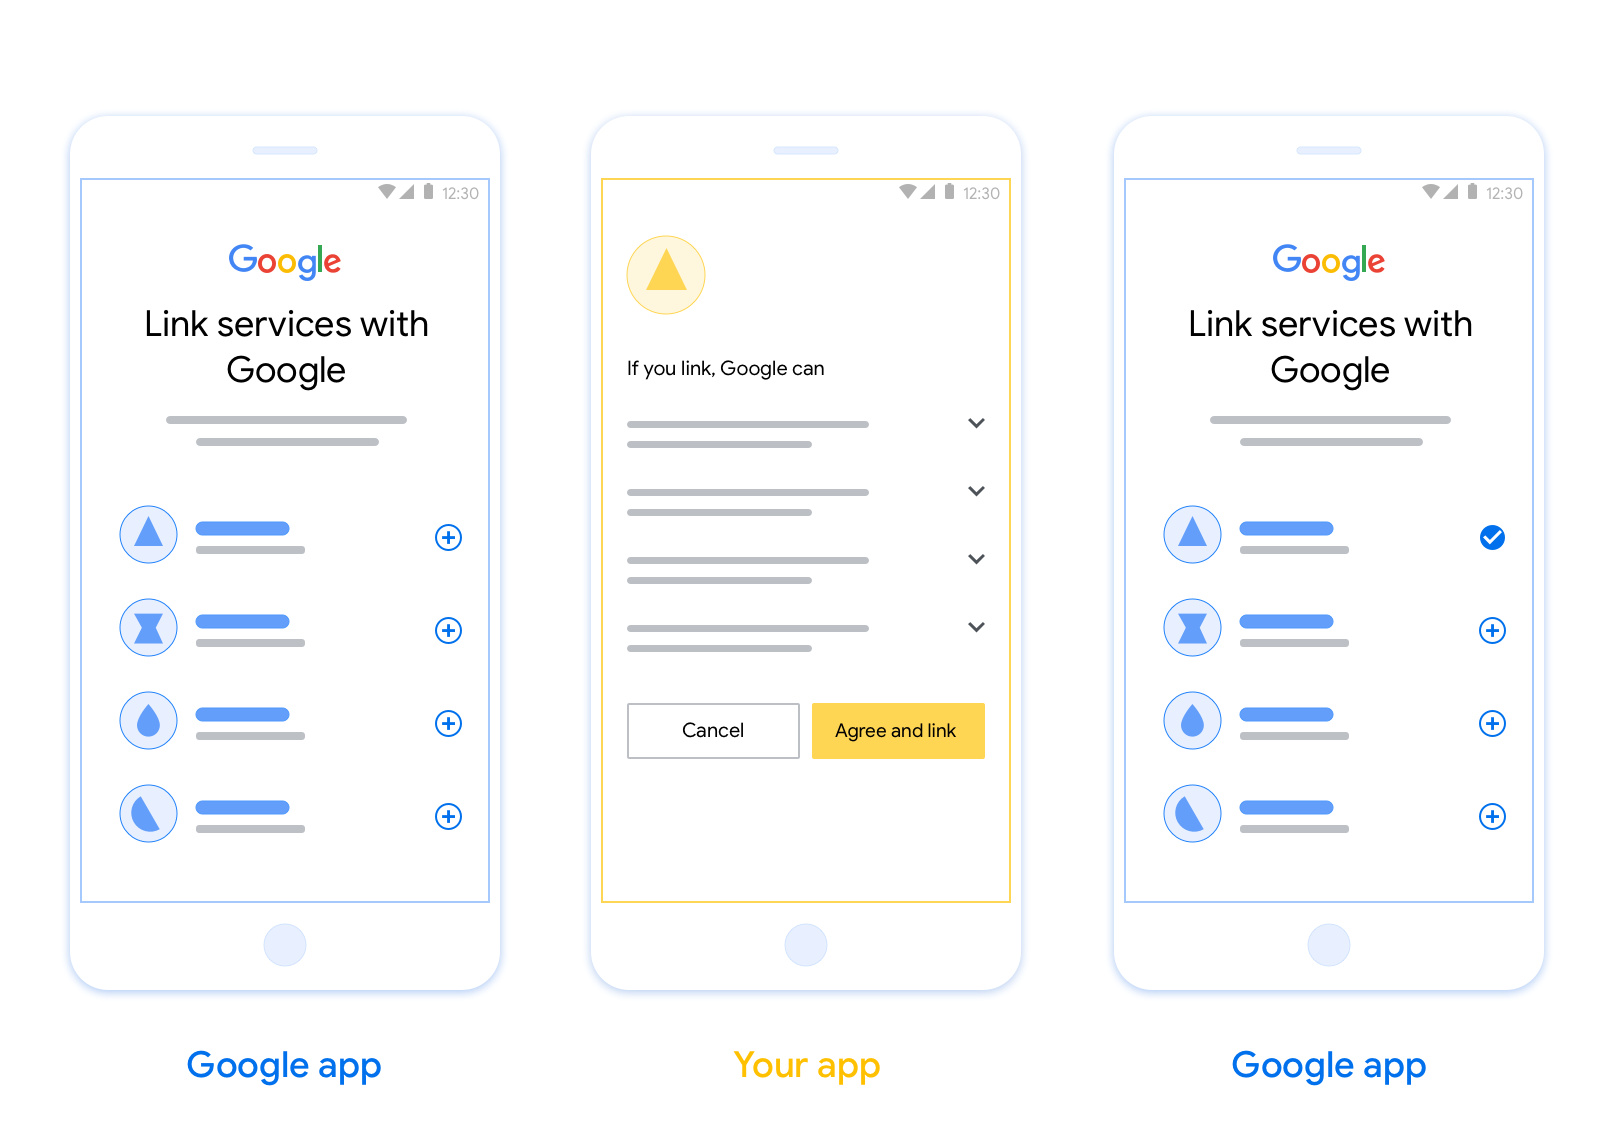 This figure shows the steps for a user to link their Google account             to your authentication system. The first screenshot shows how a user             can select your app if their Google account is linked to your app.             The second screenshot shows the confirmation for linking their             Google account with your app. The third screenshot shows a             successfully linked user account in the Google app.